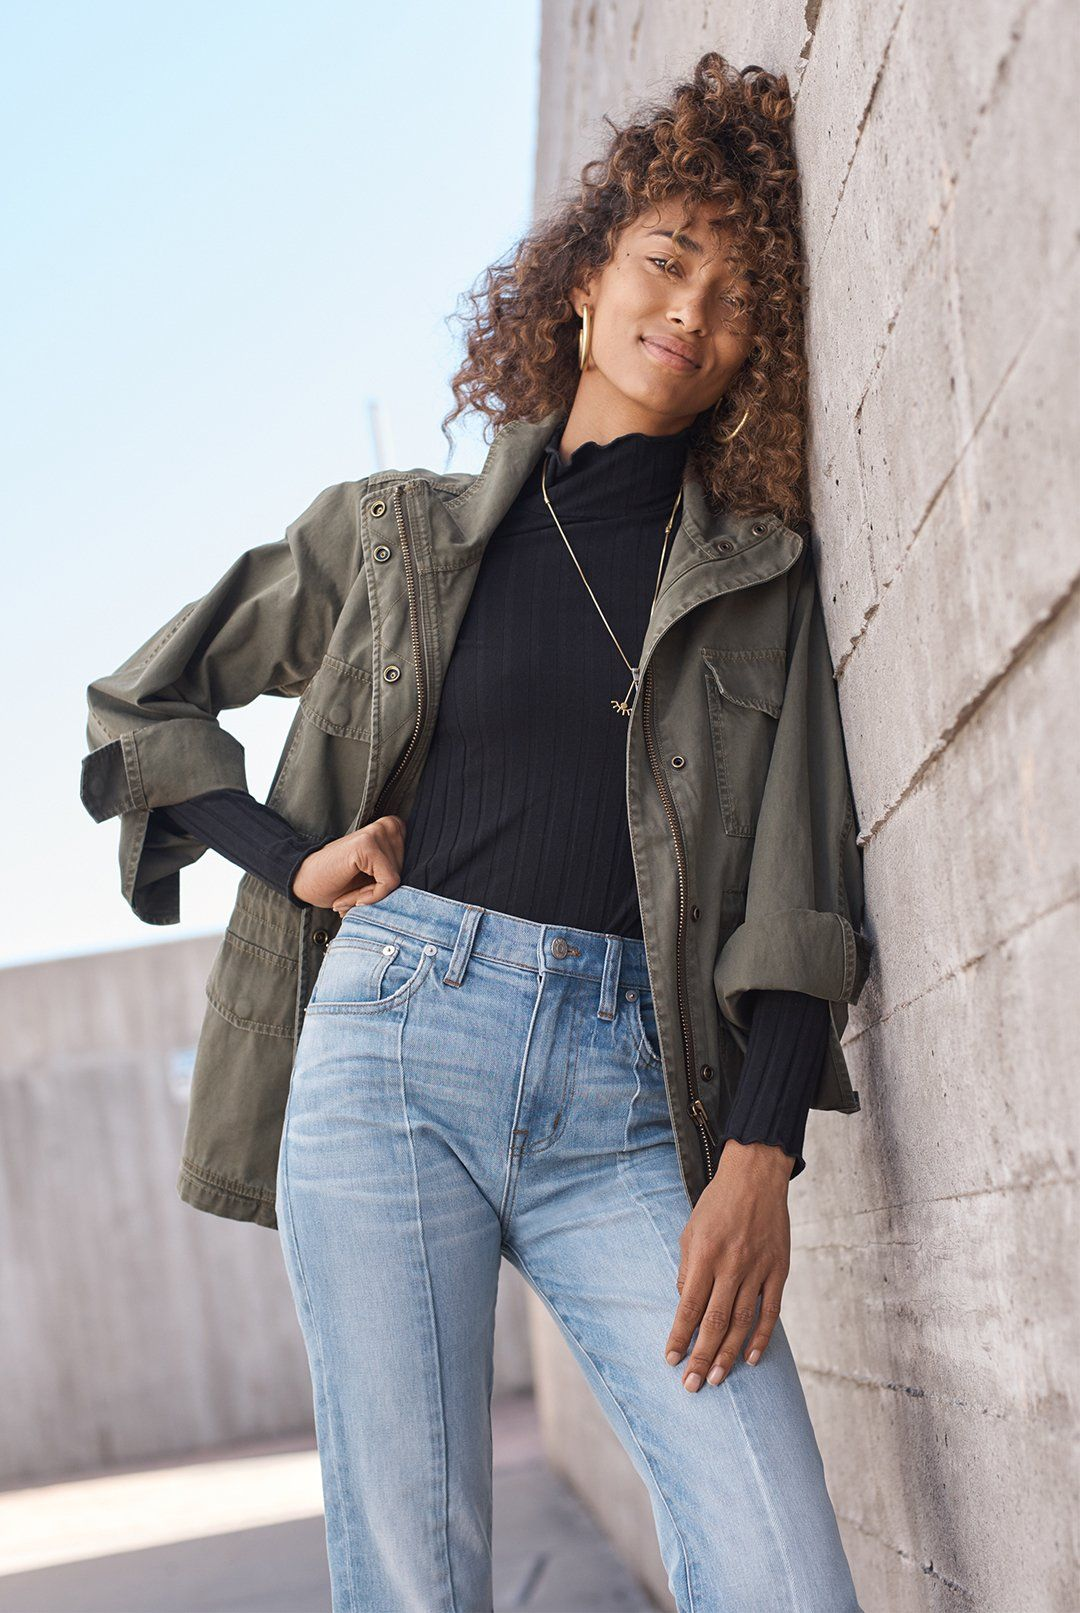 97826cae704 madewell surplus jacket worn with cruiser straight jeans